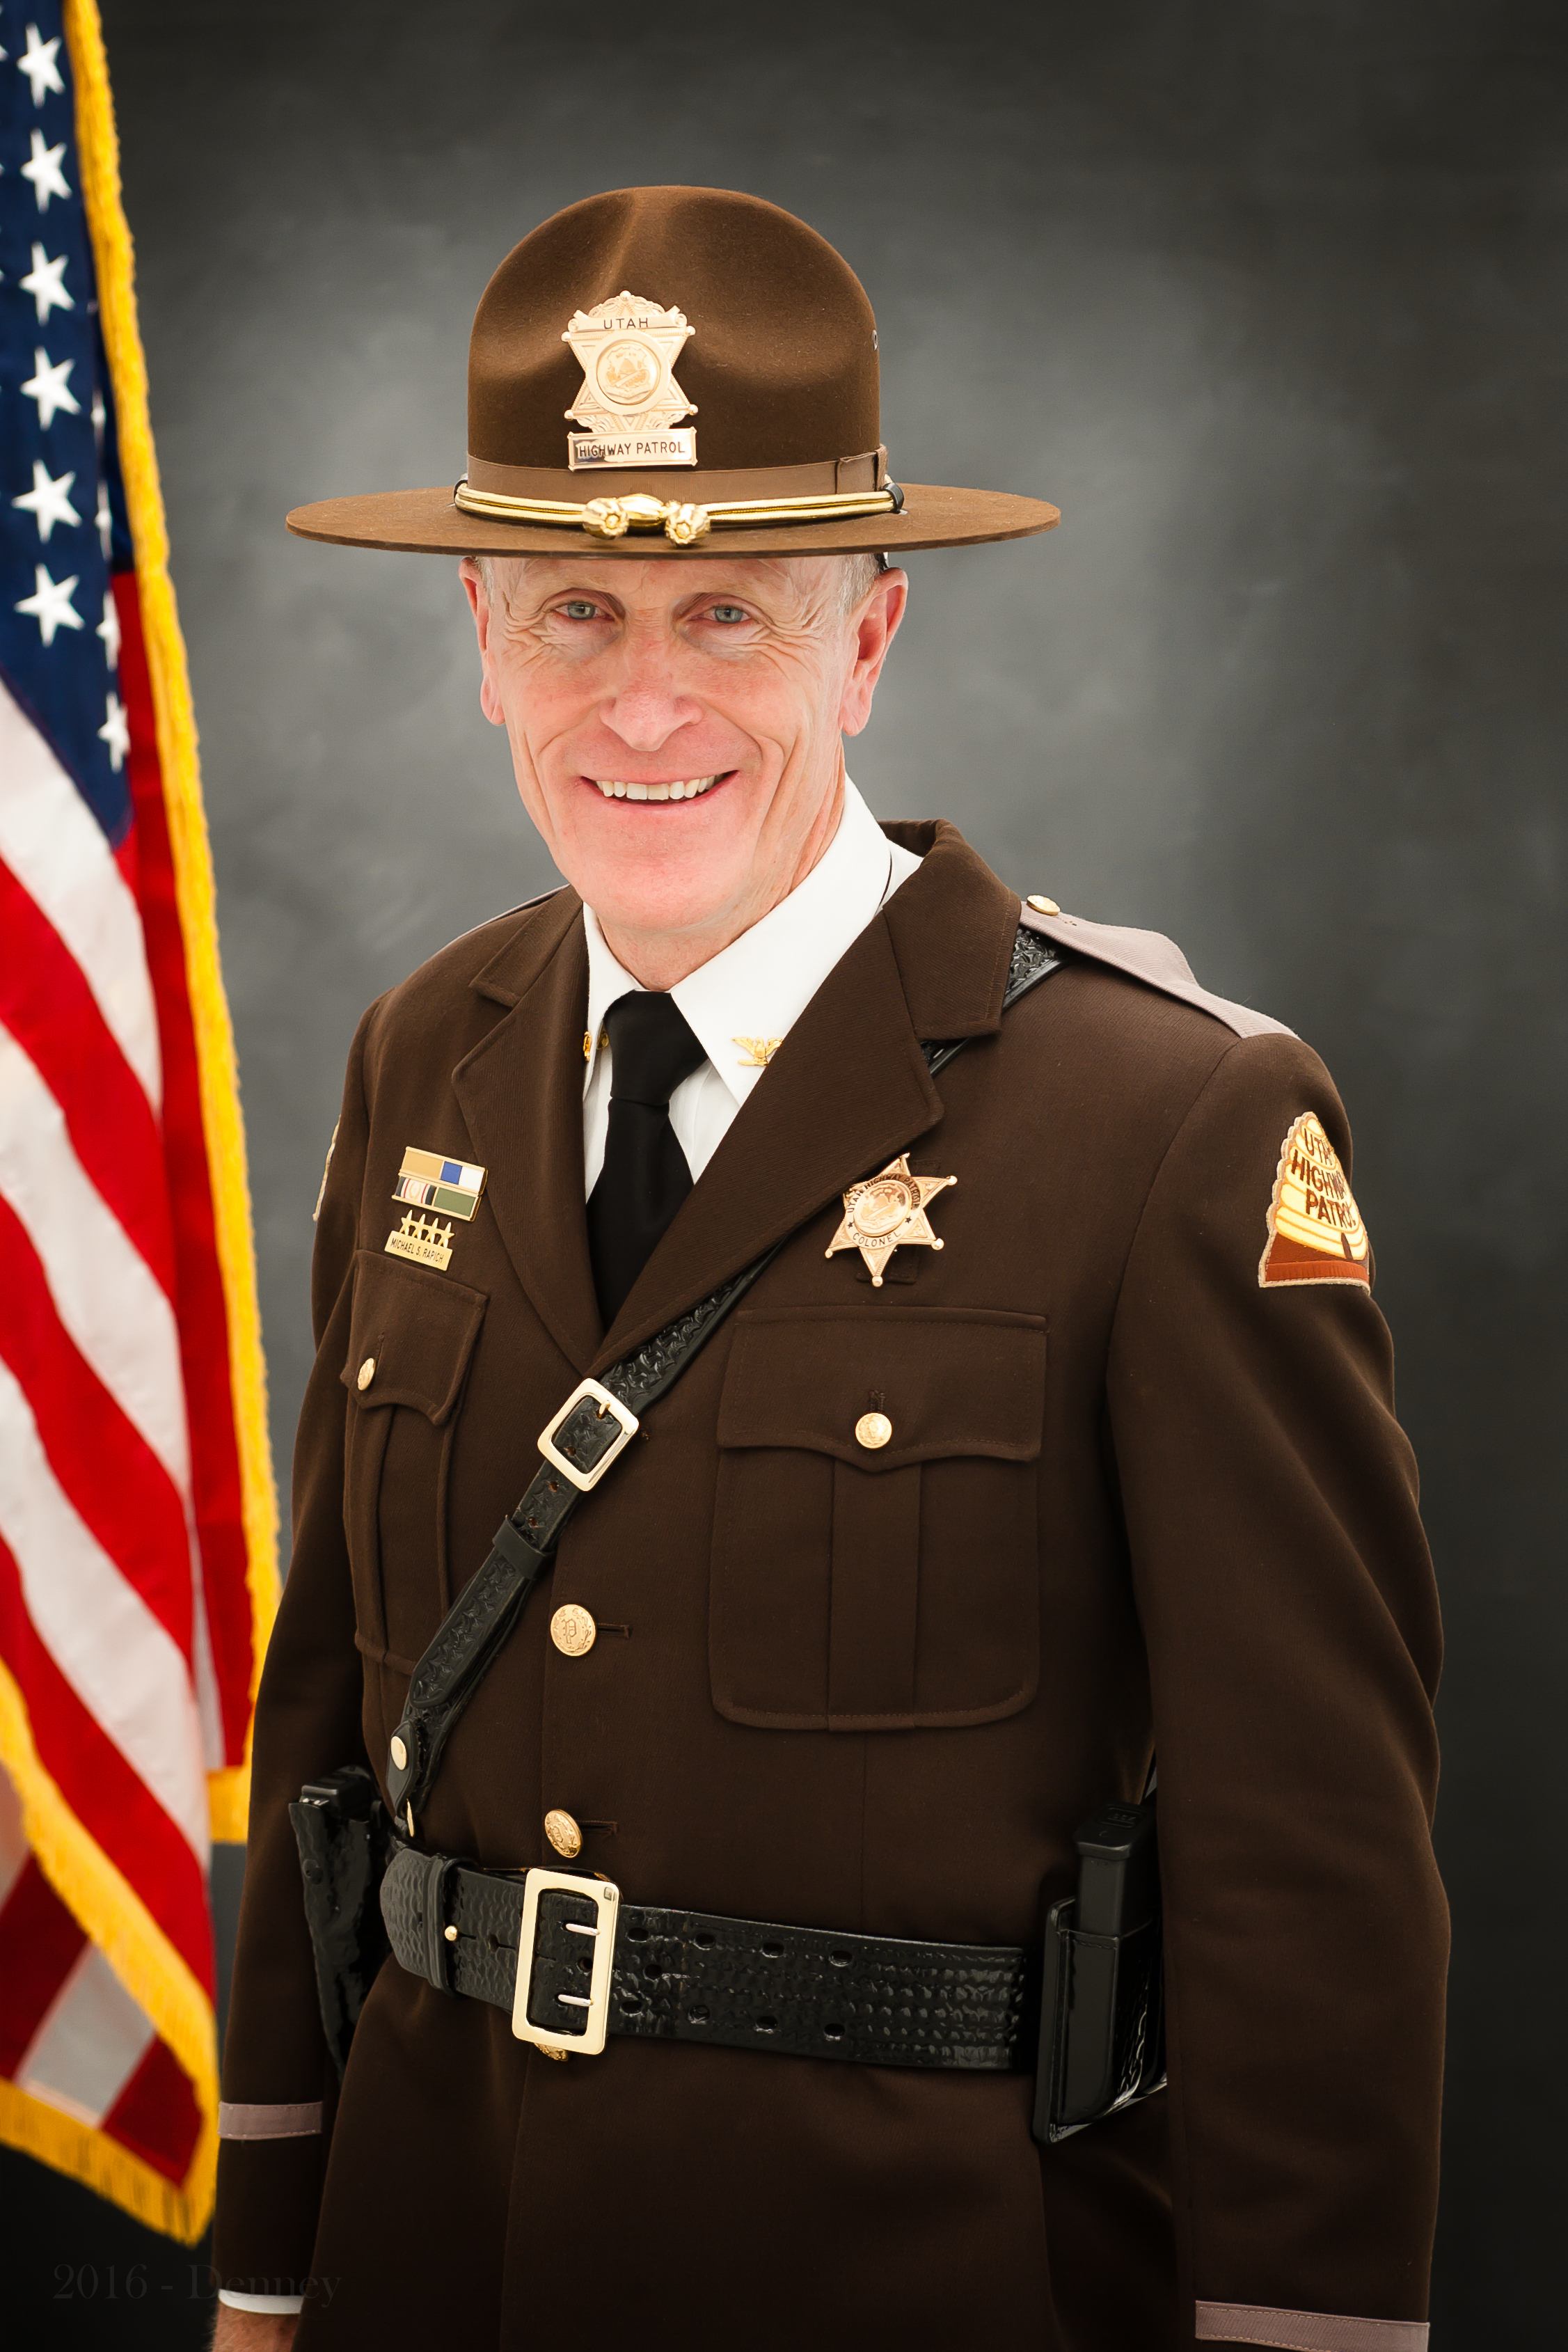 Utah Highway Patrol Colonel Michael Rapich